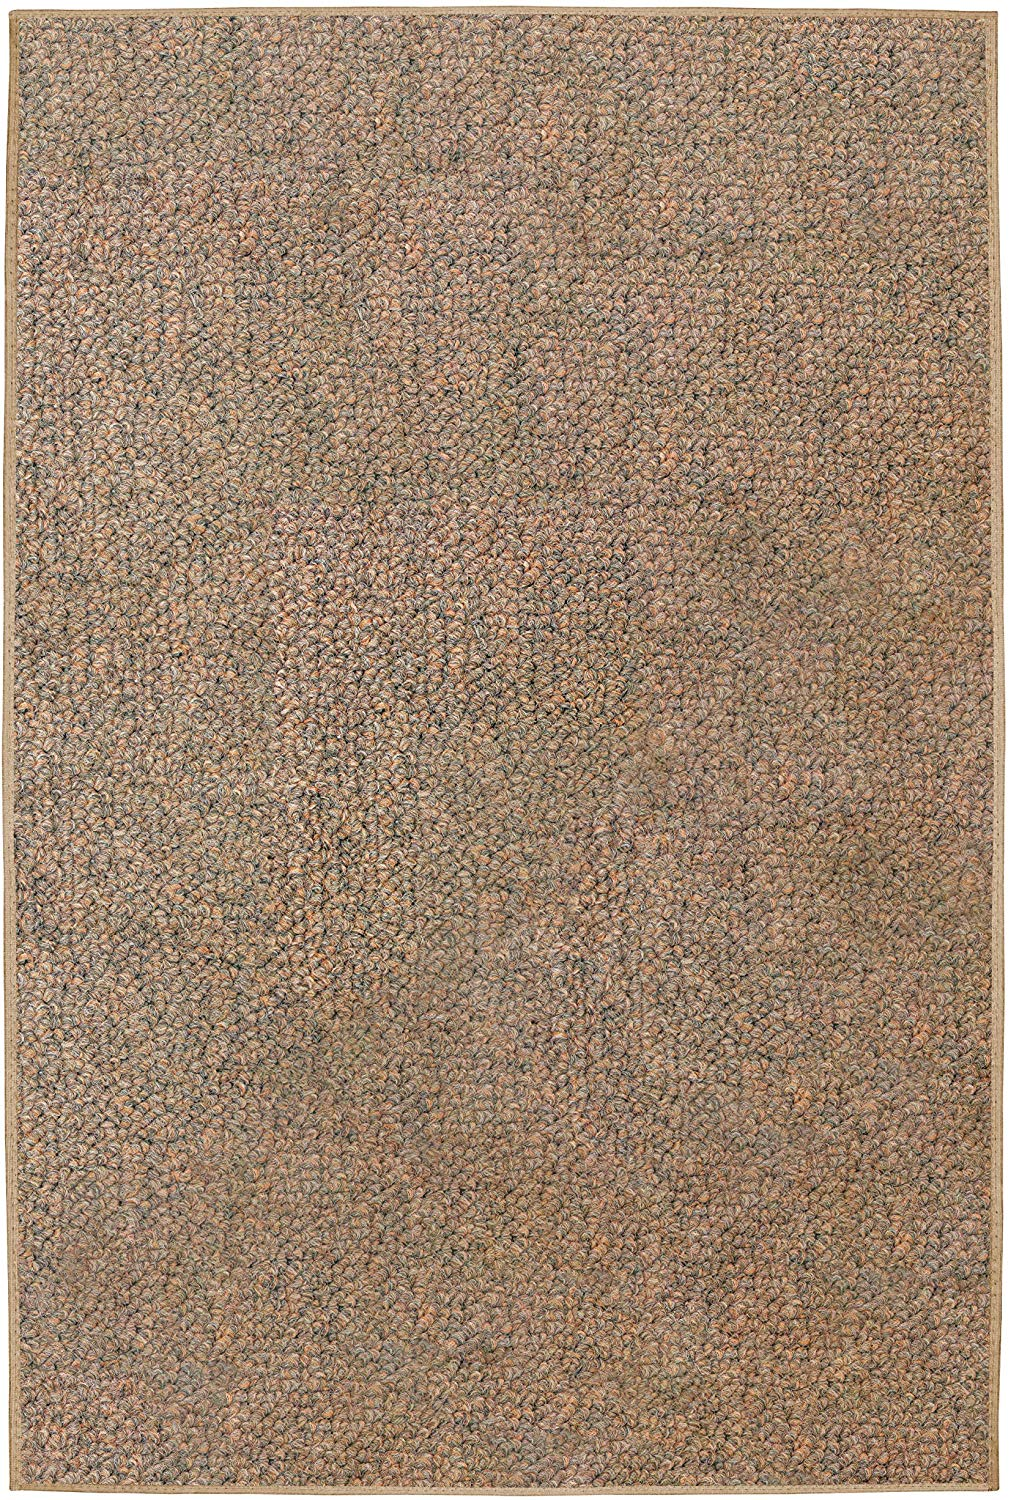 8 x8 square tumbleweed indoor outdoor area rug carpet runners with a premium fabric finished edges